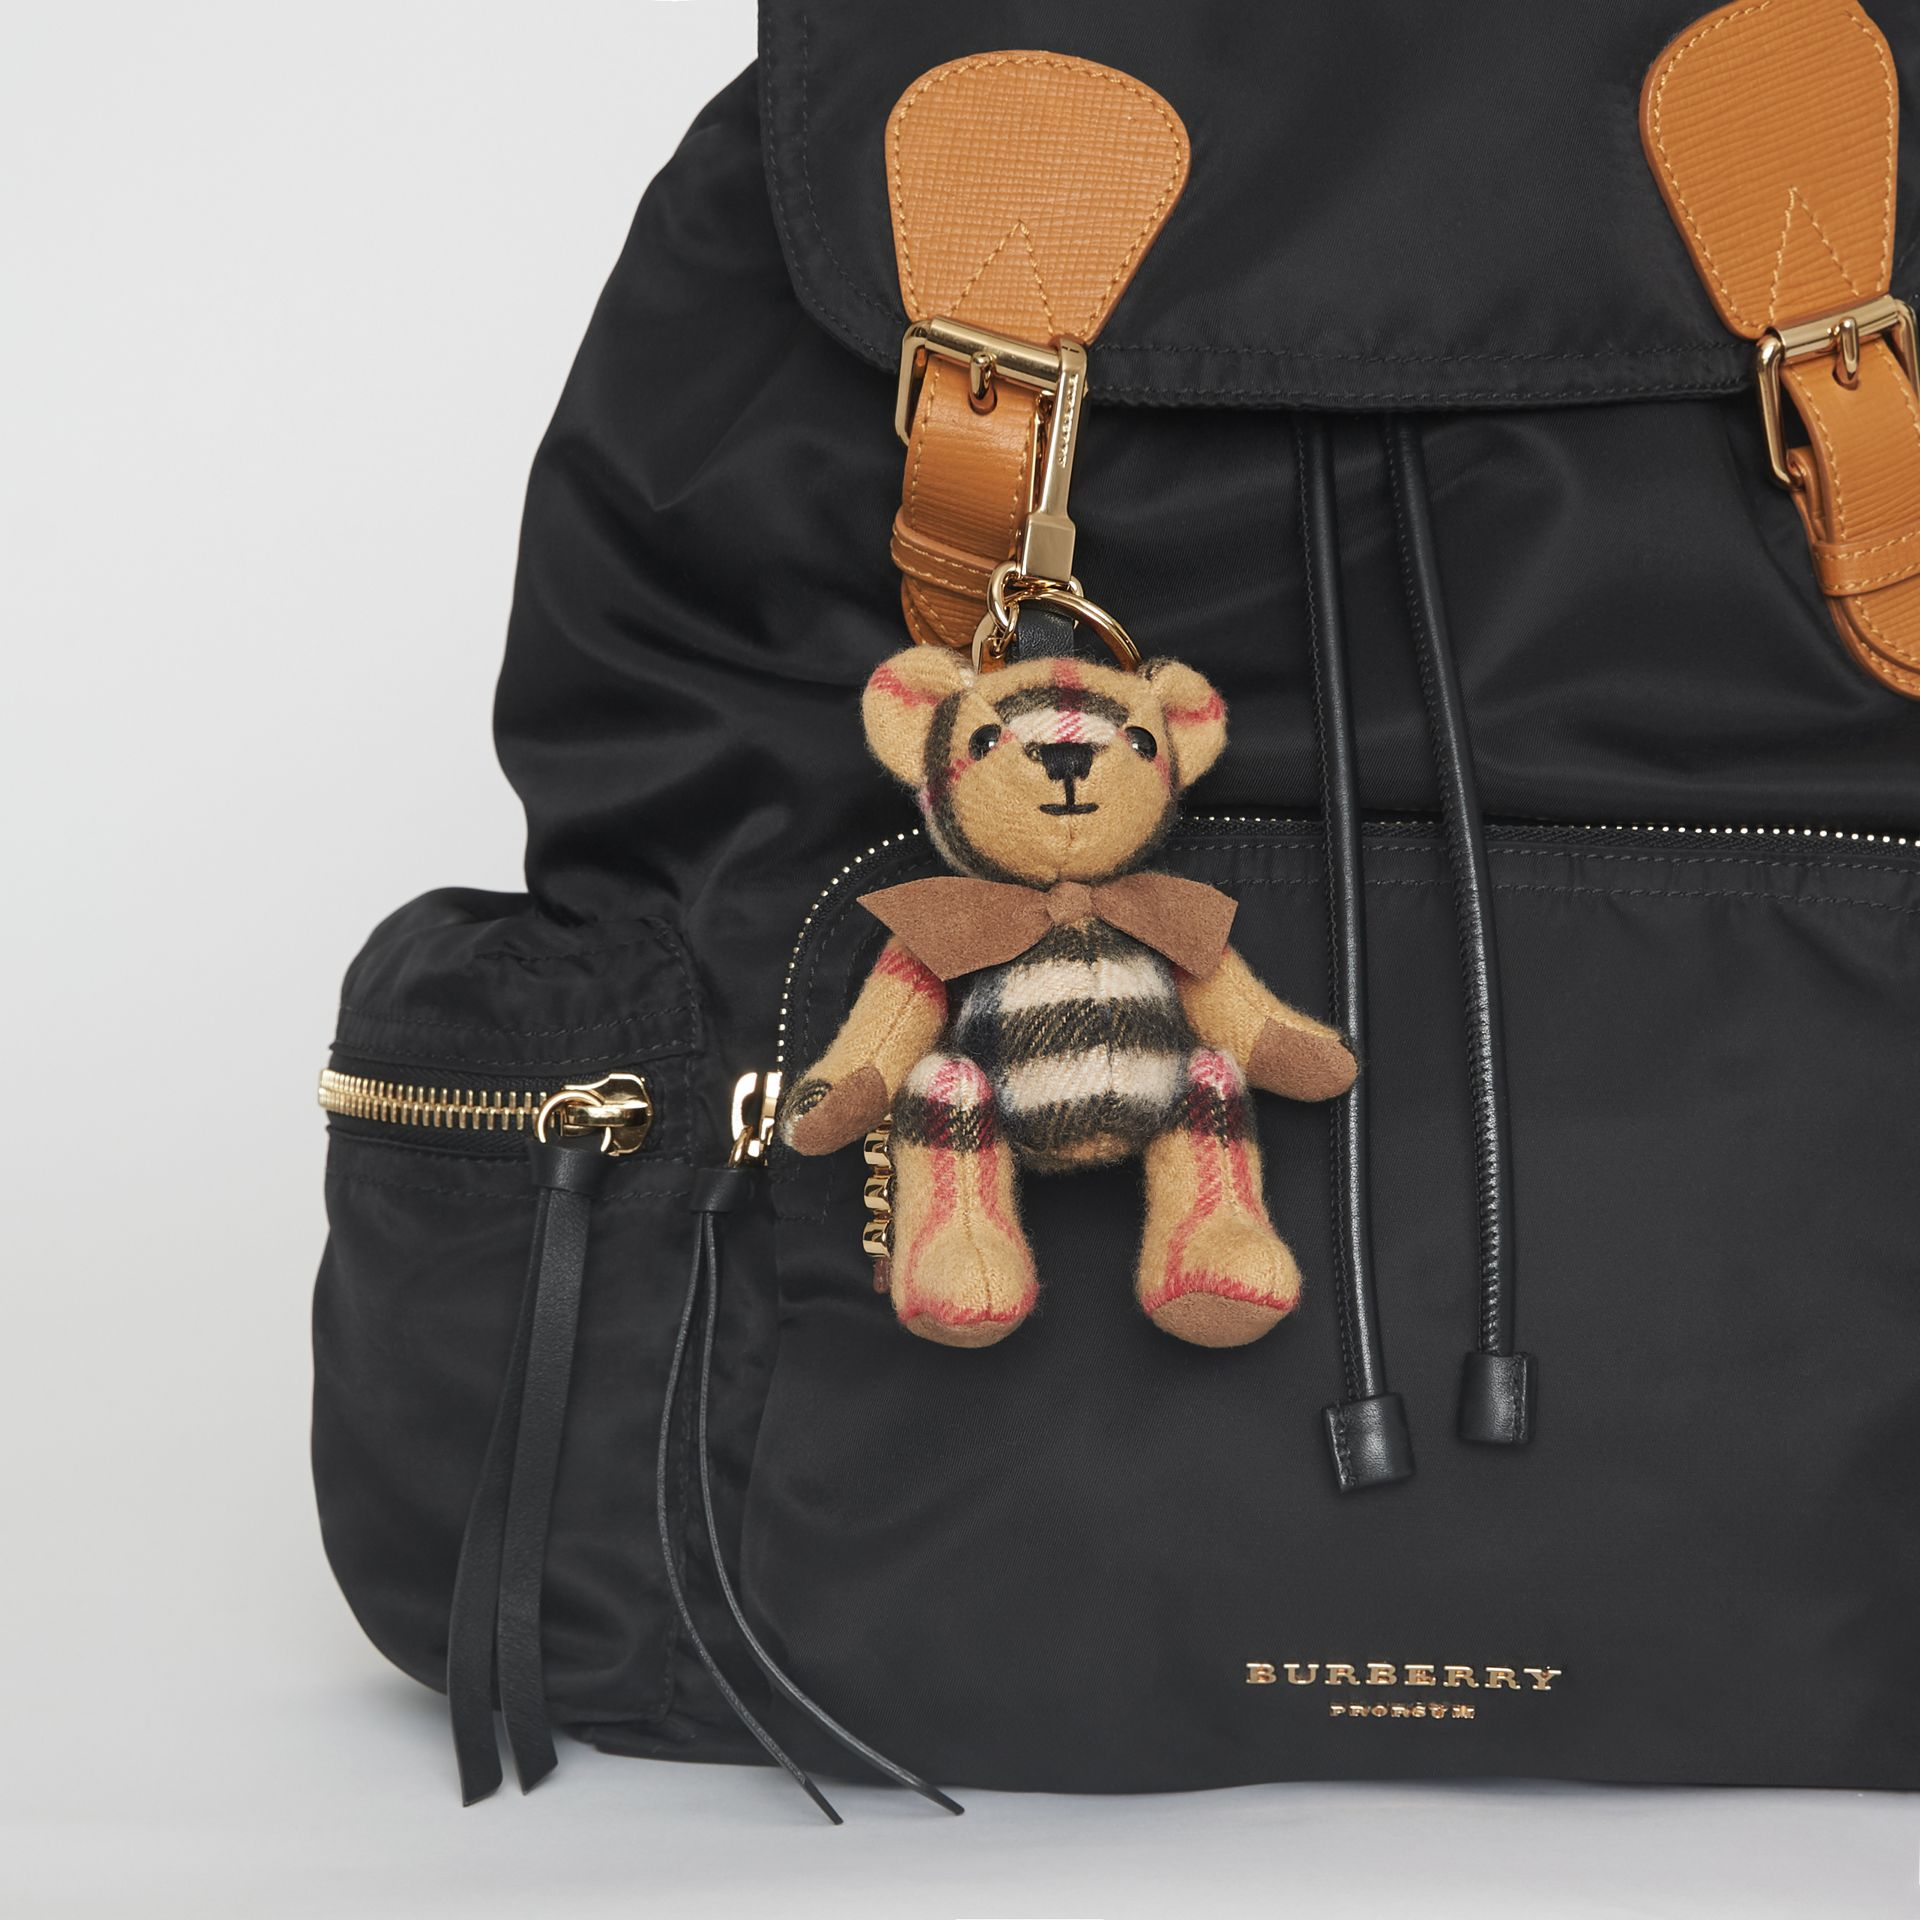 Bijou porte-clés Thomas Bear en cachemire à motif Vintage check (Jaune Antique) | Burberry - photo de la galerie 2